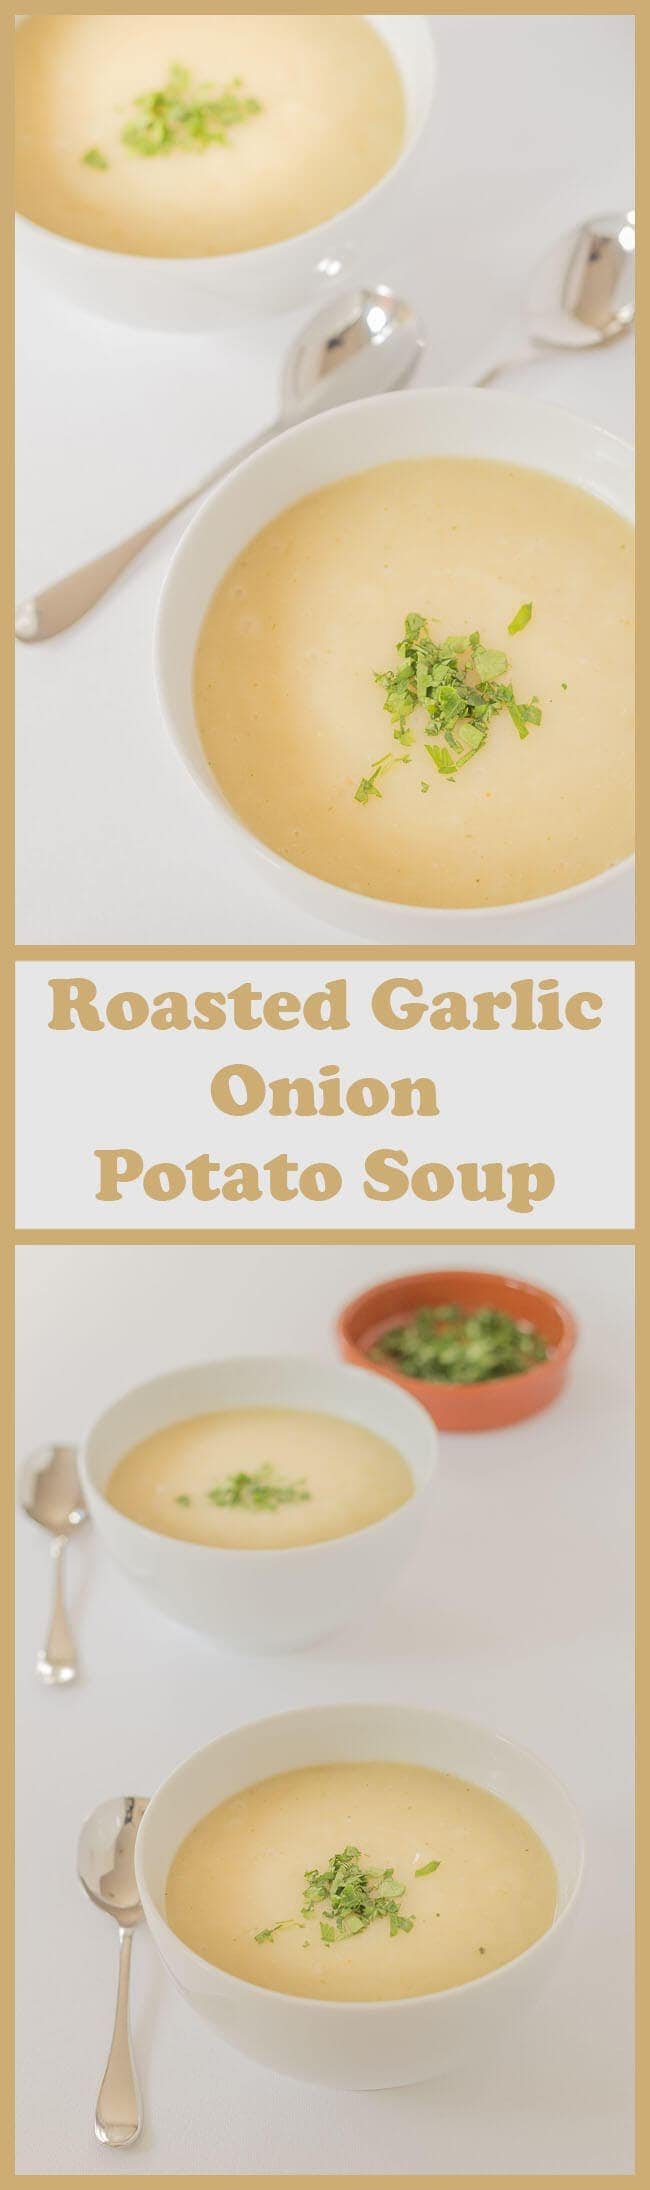 This roasted garlic onion potato soup is made from just 6 ingredients, it's vegan and is a perfect way to use up surplus potatoes.